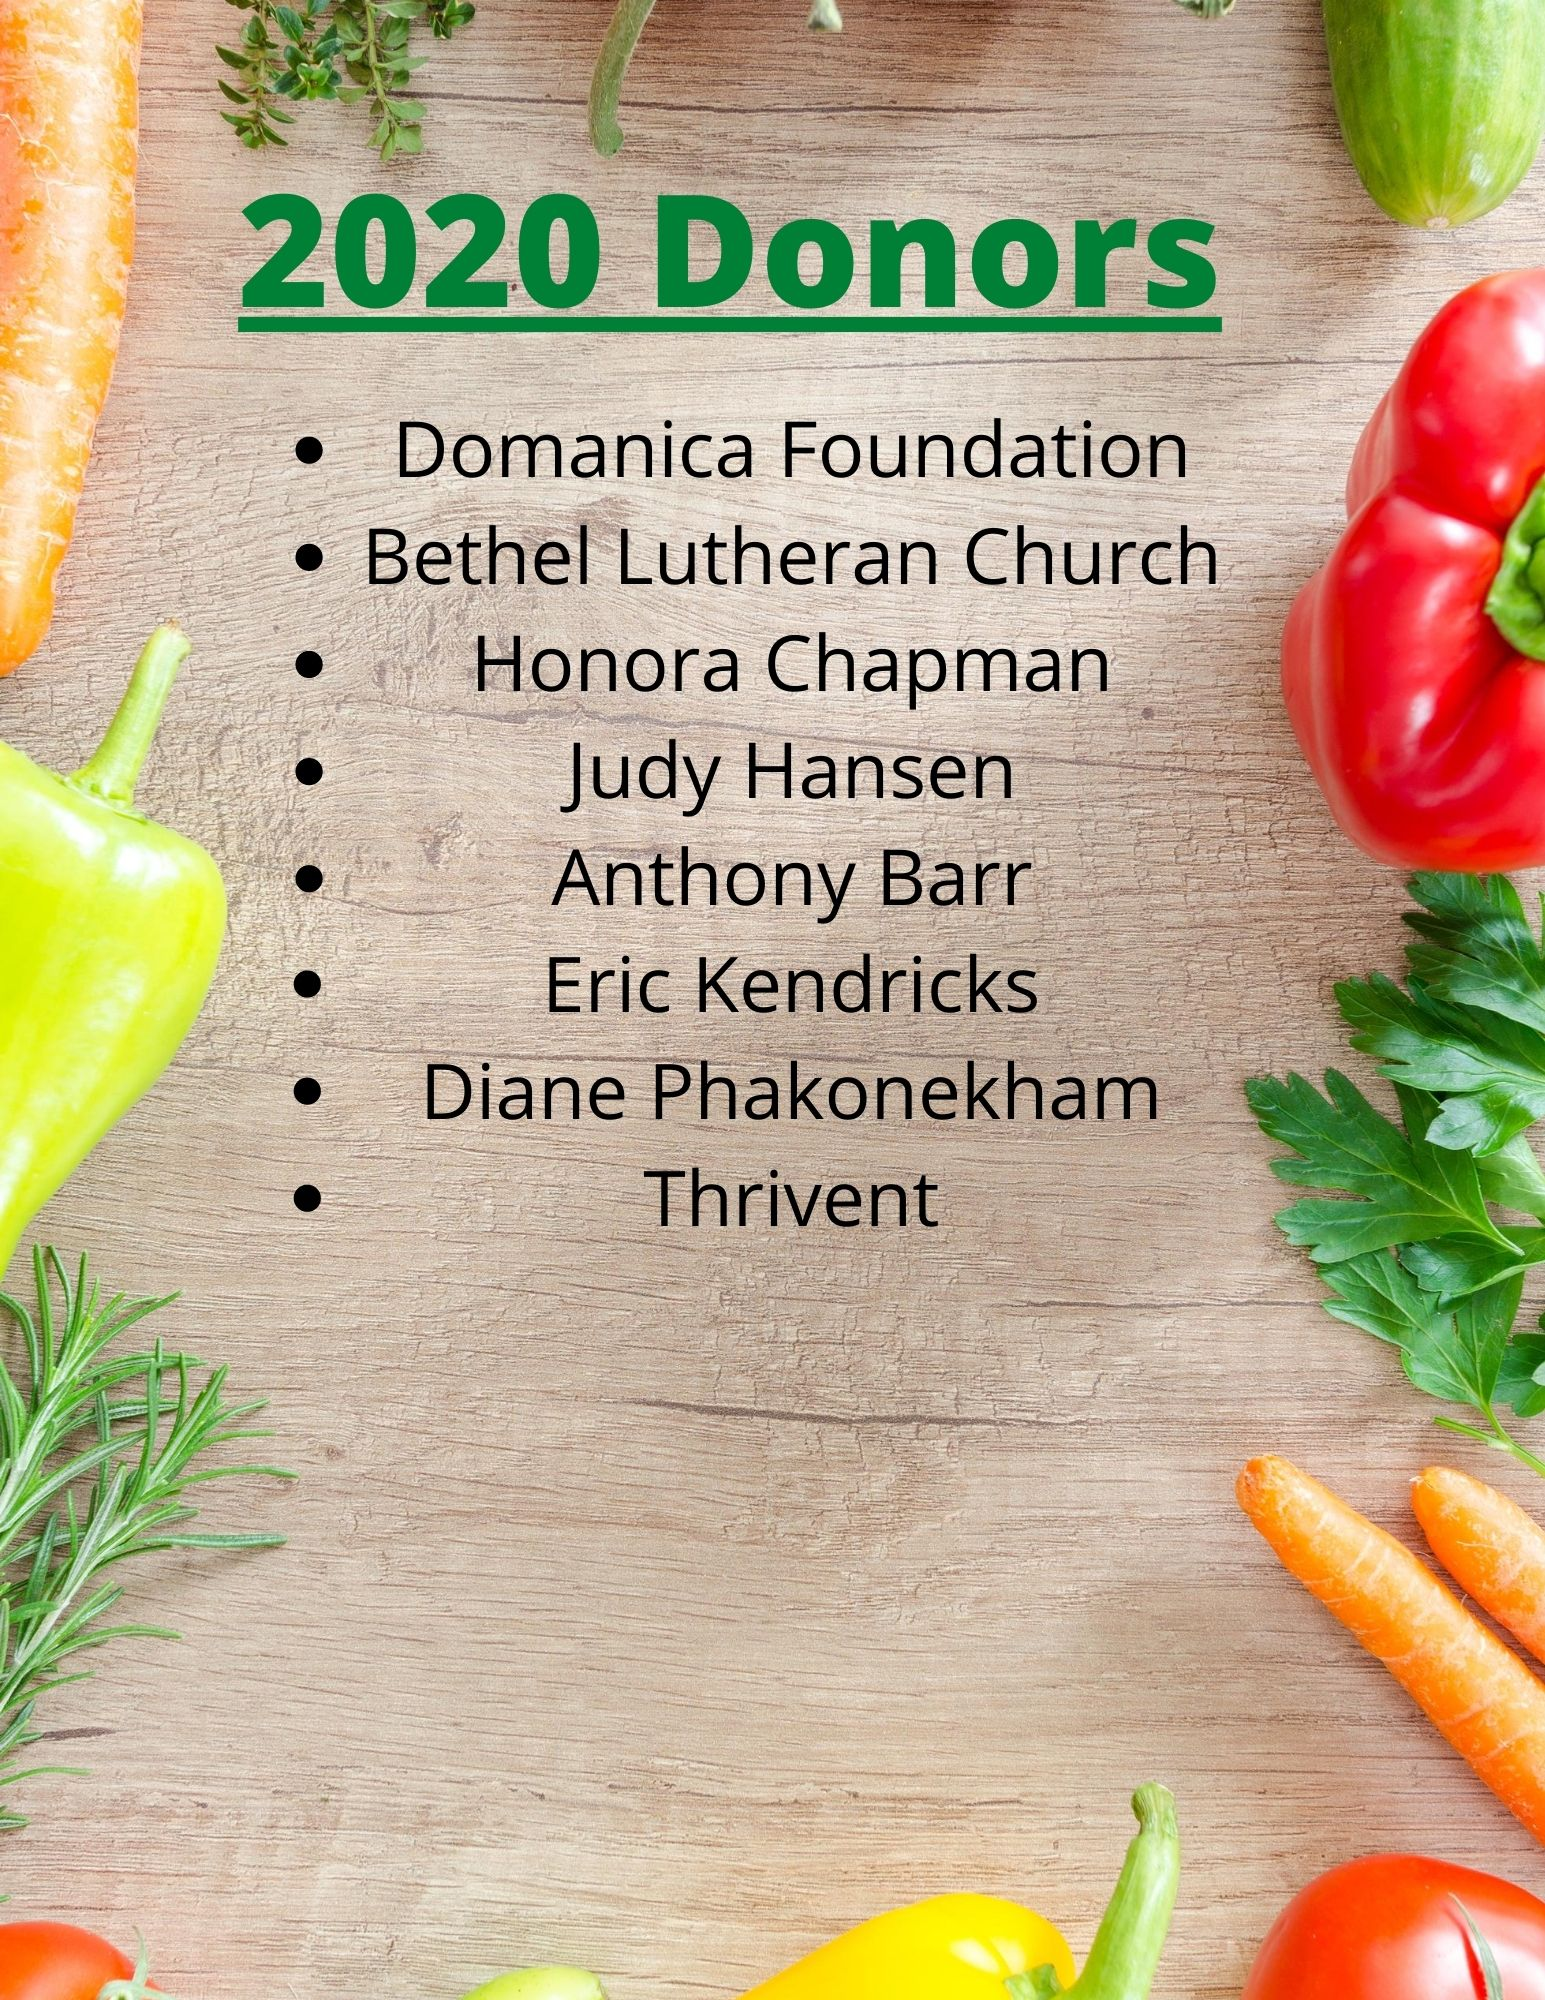 2020-donors-18